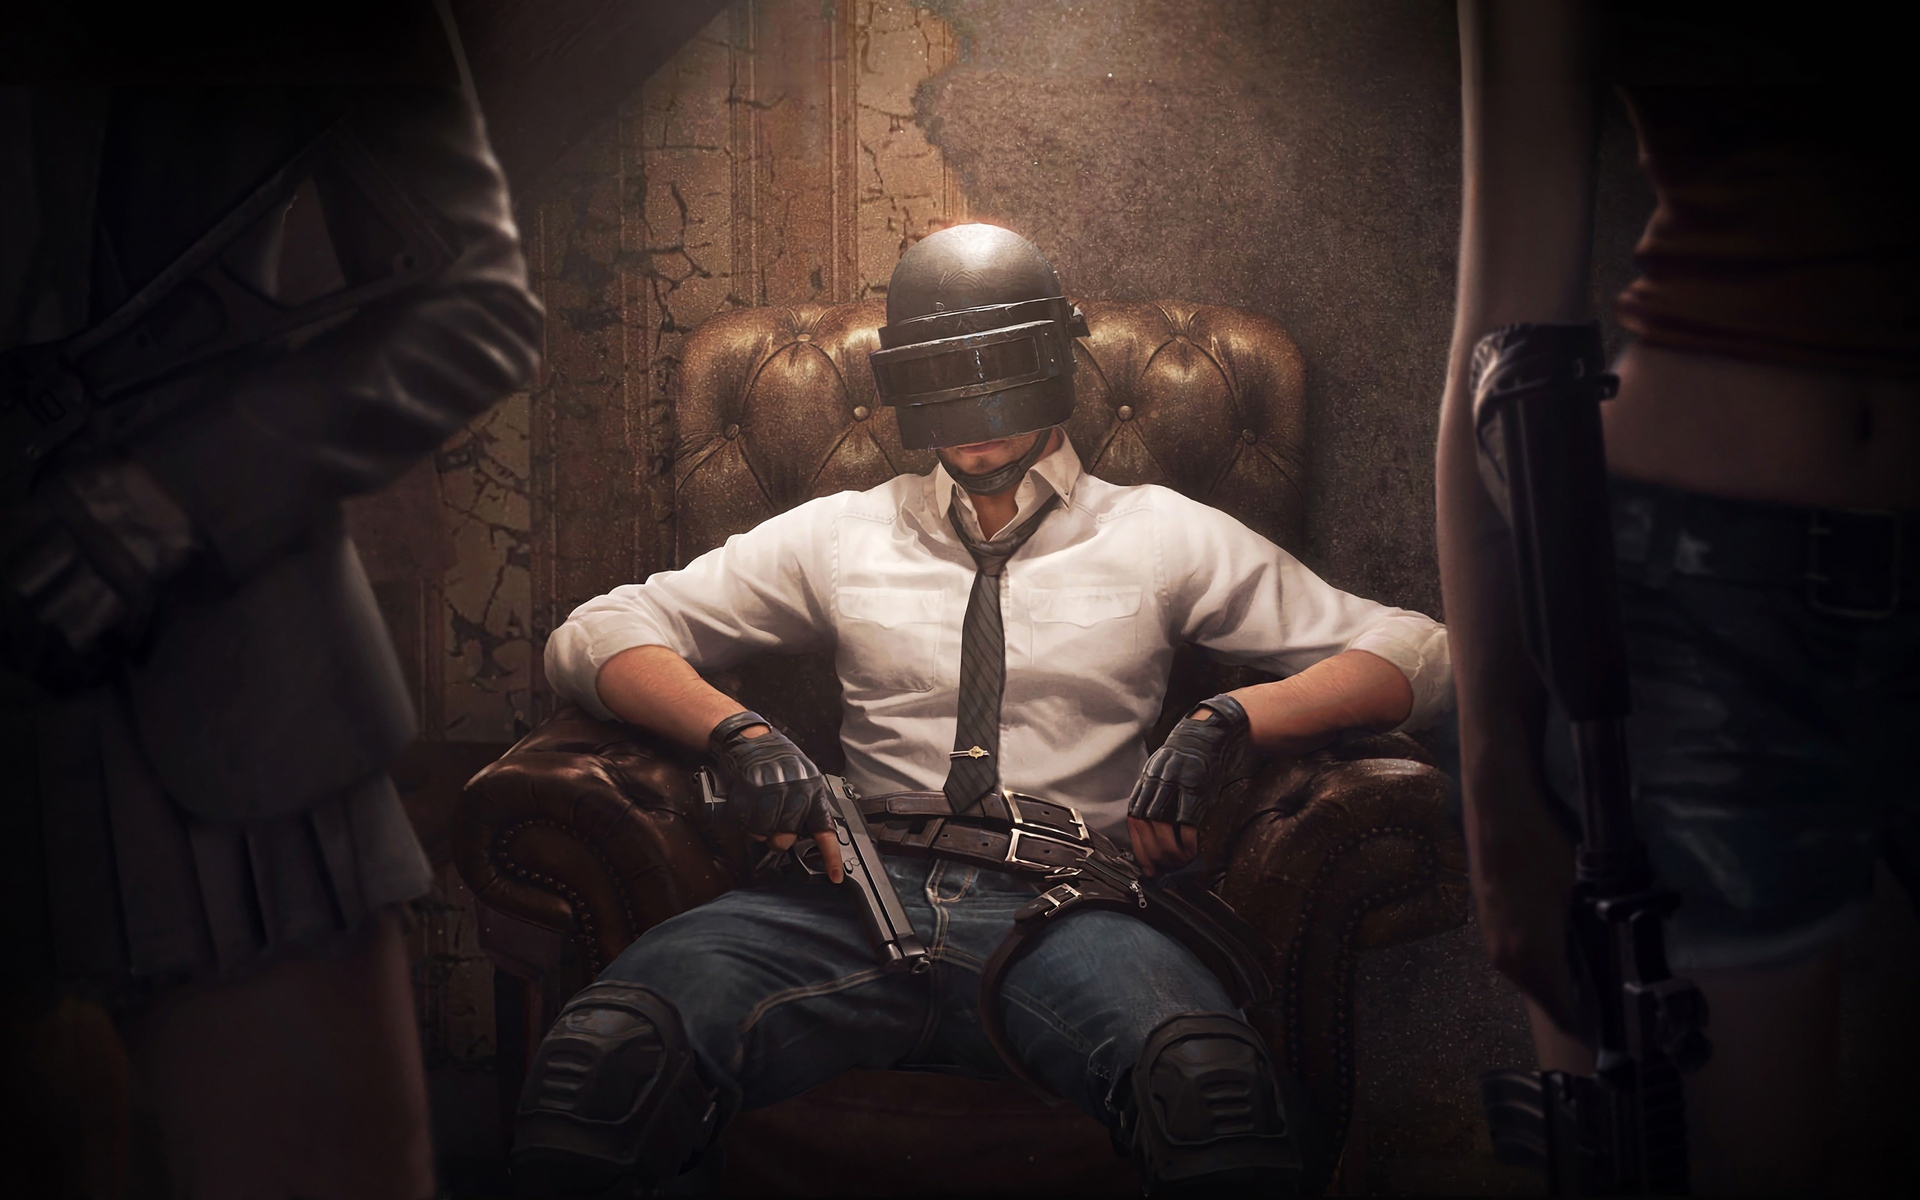 Pubg Wallpaper Phone Hd 4k: 1920x1200 Pubg Android Game 4k 1080P Resolution HD 4k